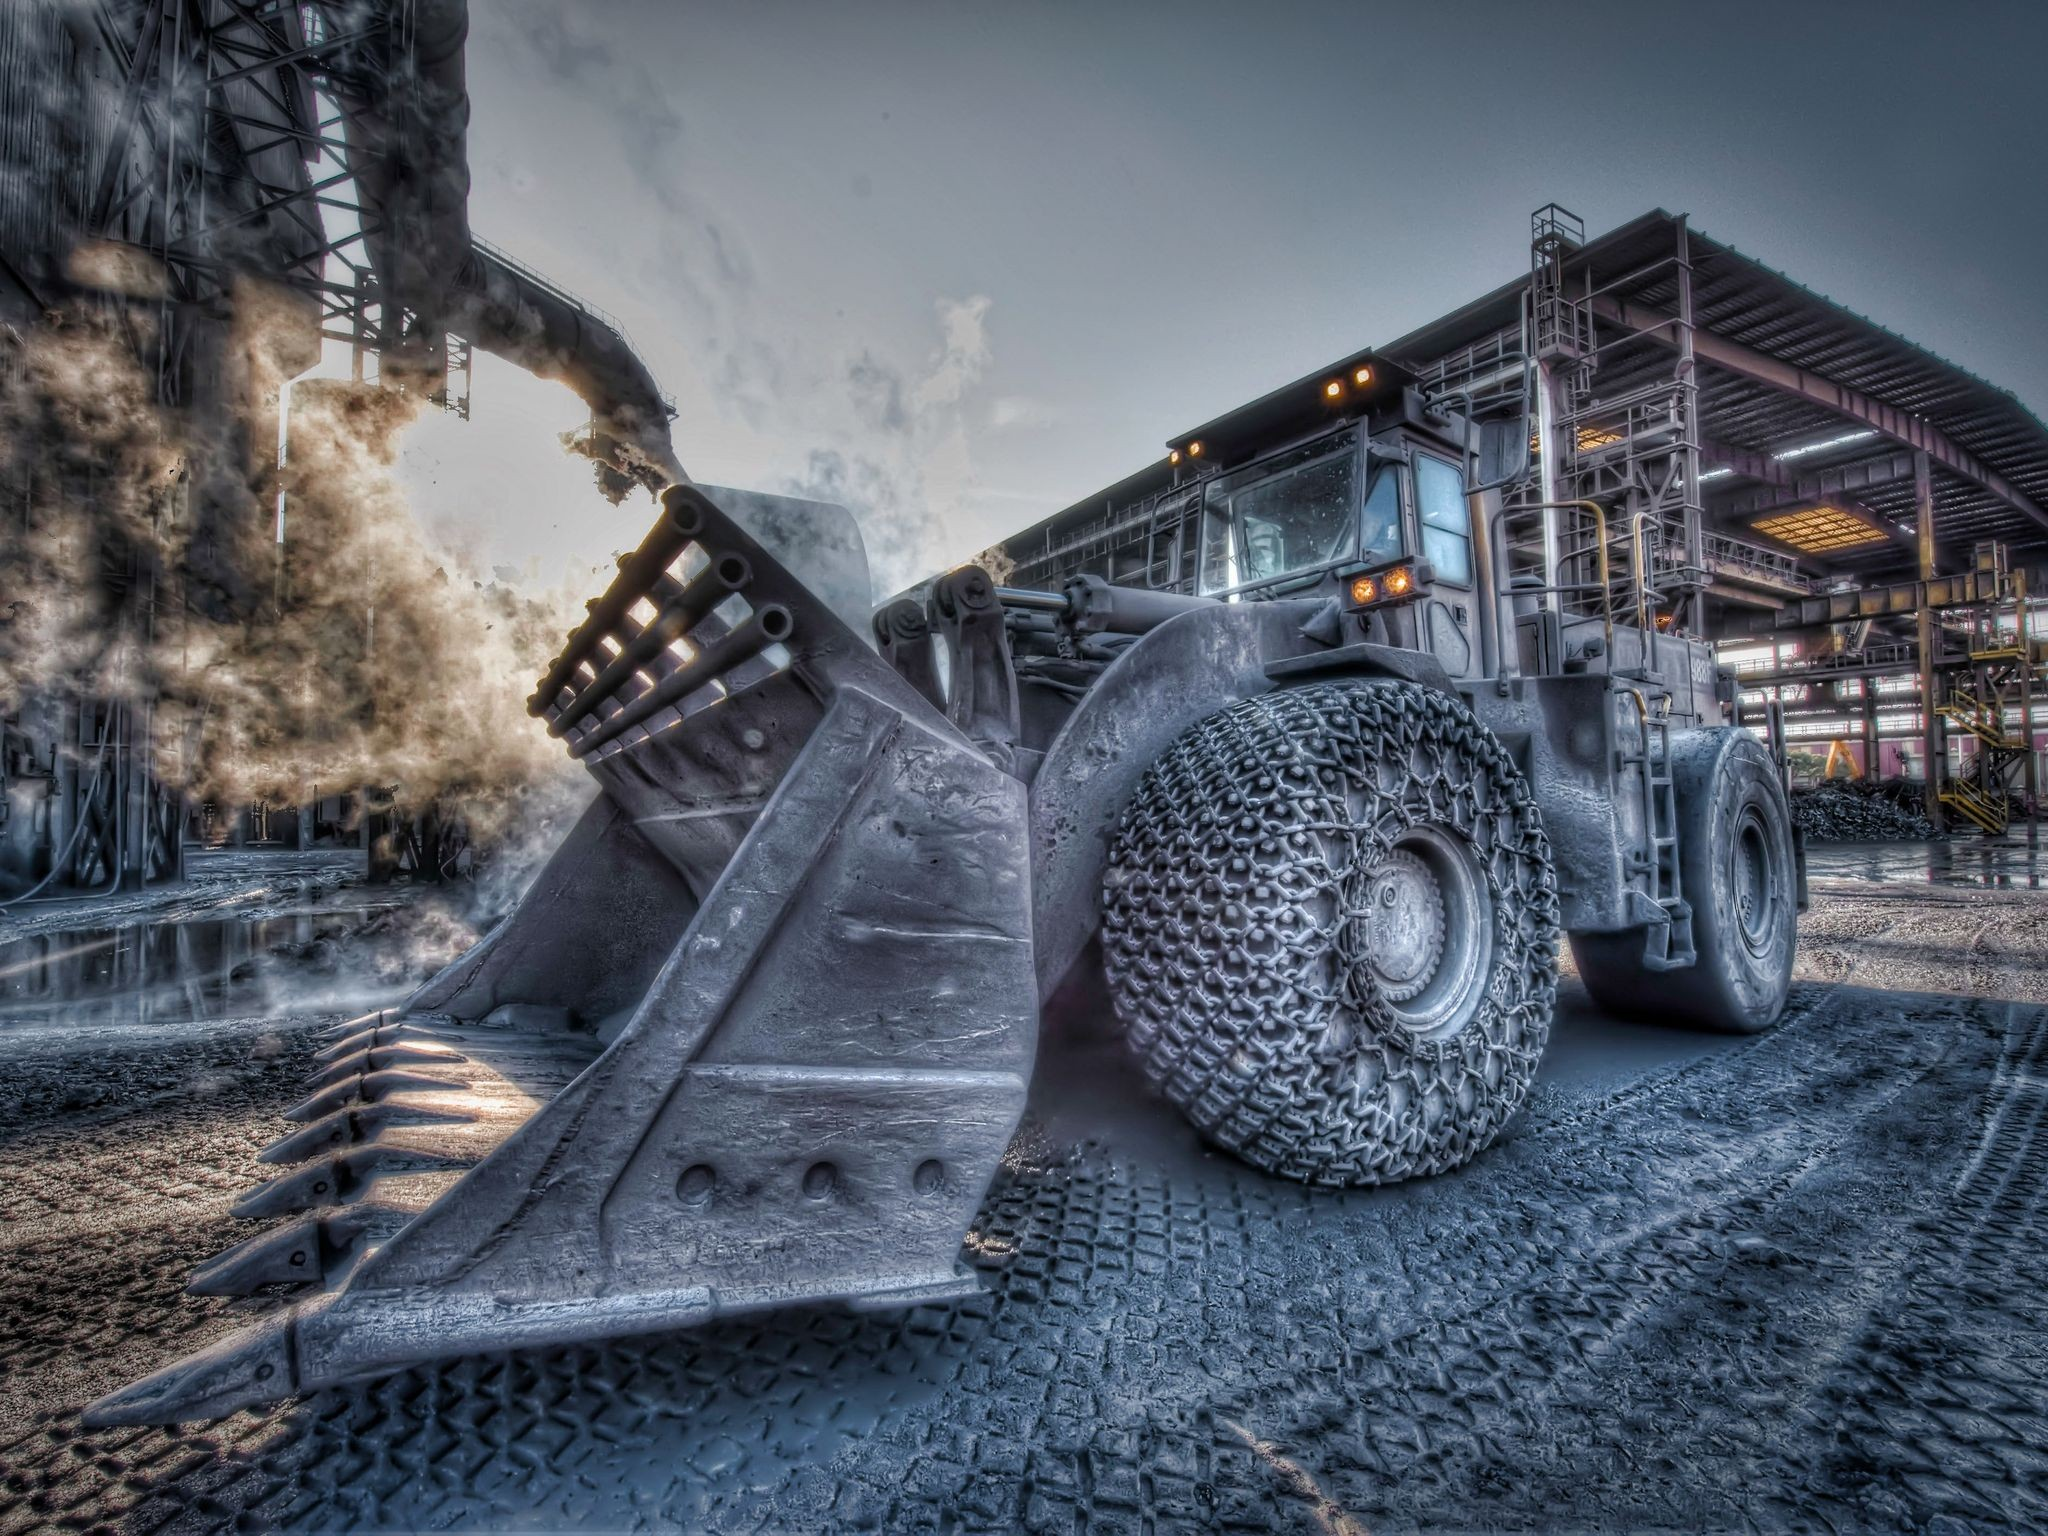 HDR Photography Wallpaper 2048x1536 HDR Photography Caterpillar 2048x1536